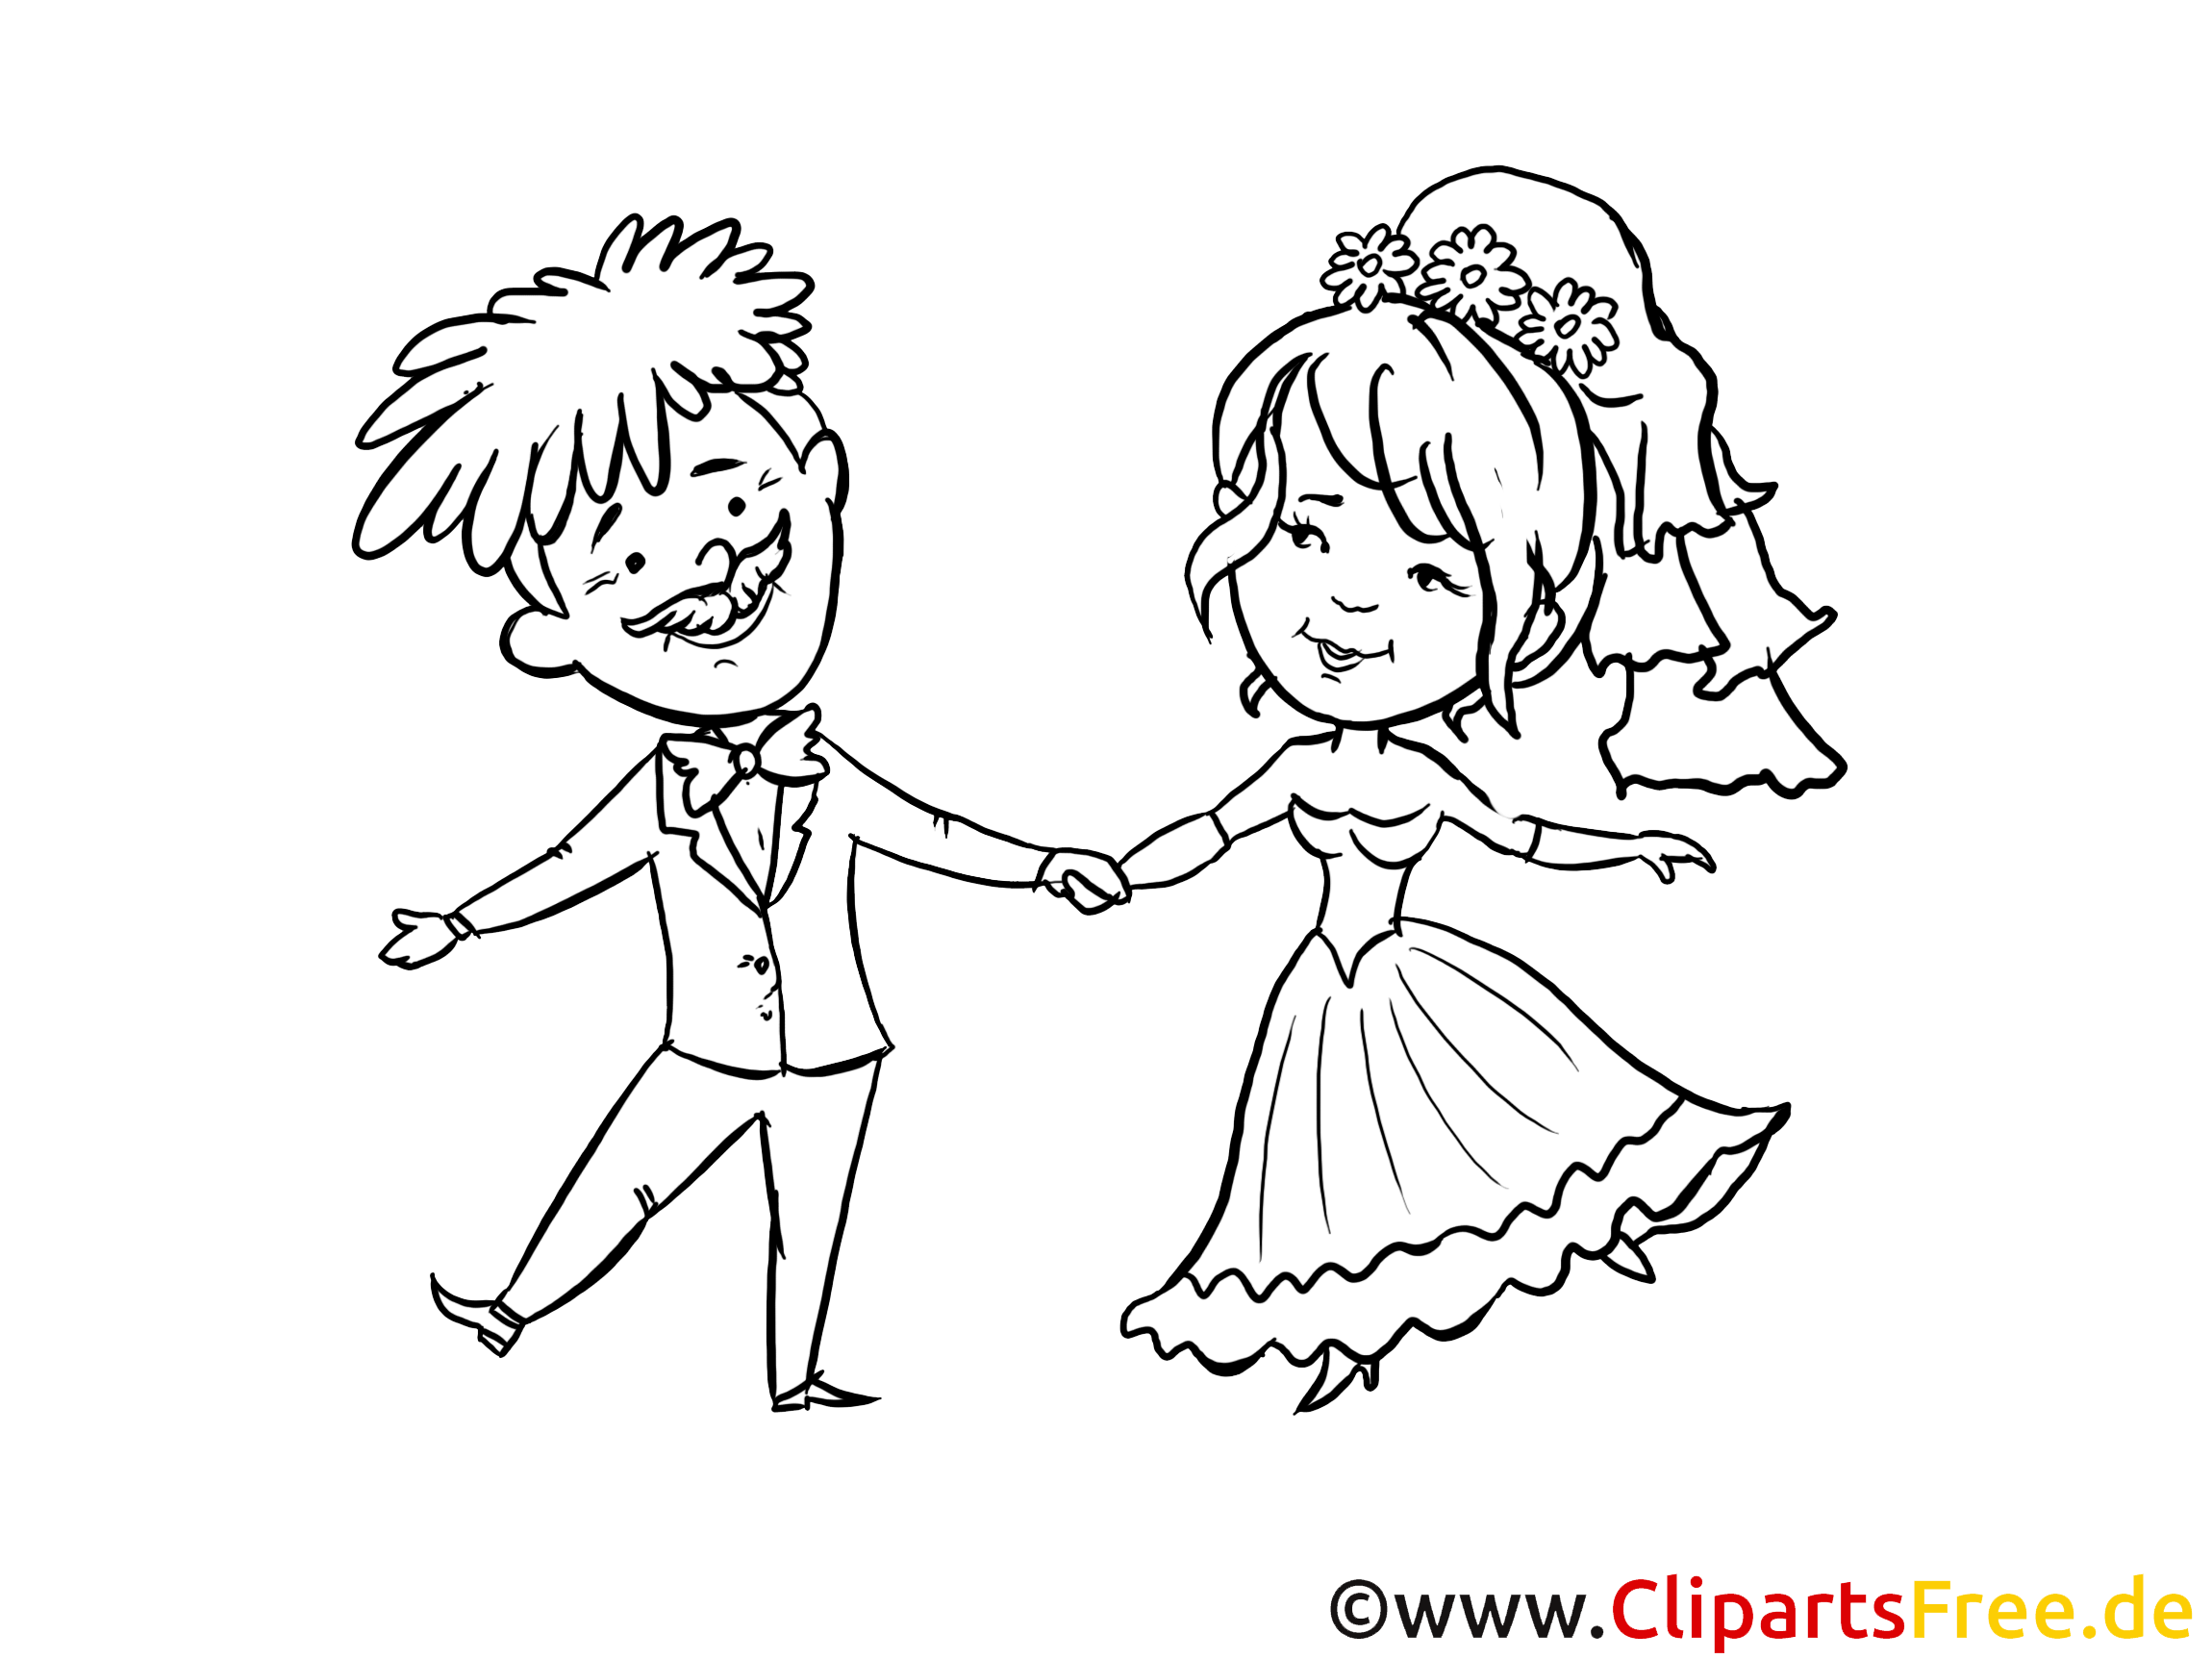 Mariage clipart #7, Download drawings